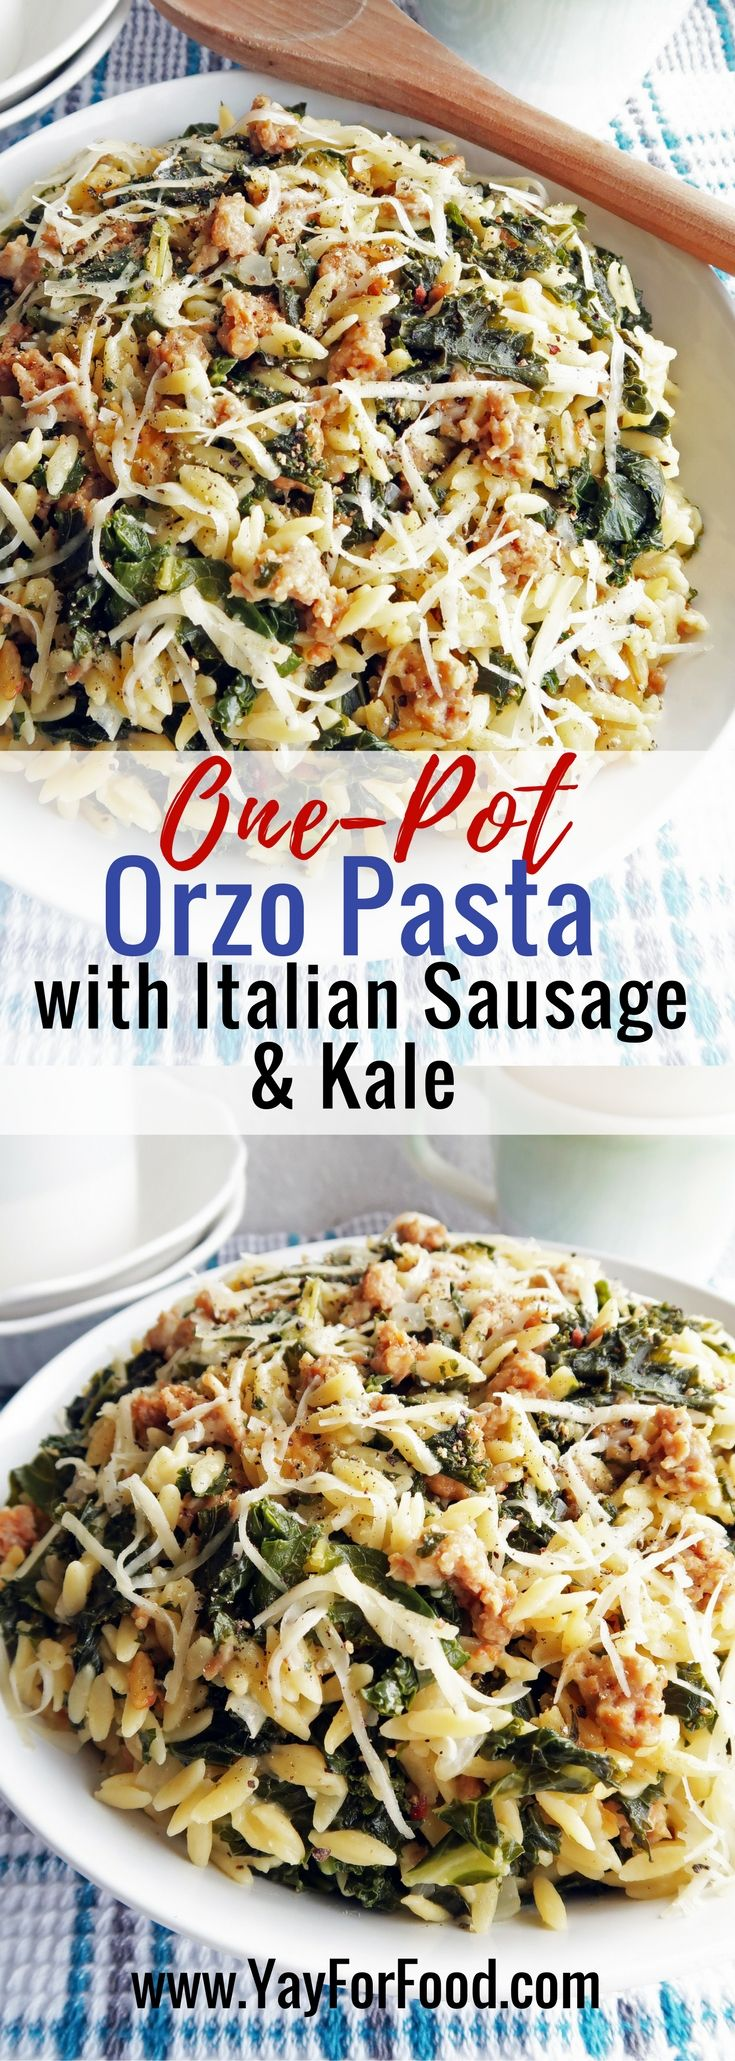 Creamy and Cheesy Orzo Pasta with Italian Sausage and Kale. A delicious, easy, and filling meal that's made in one pot and ready in 30 minutes or less! Main Dishes | Risoni | One-Pot Recipes